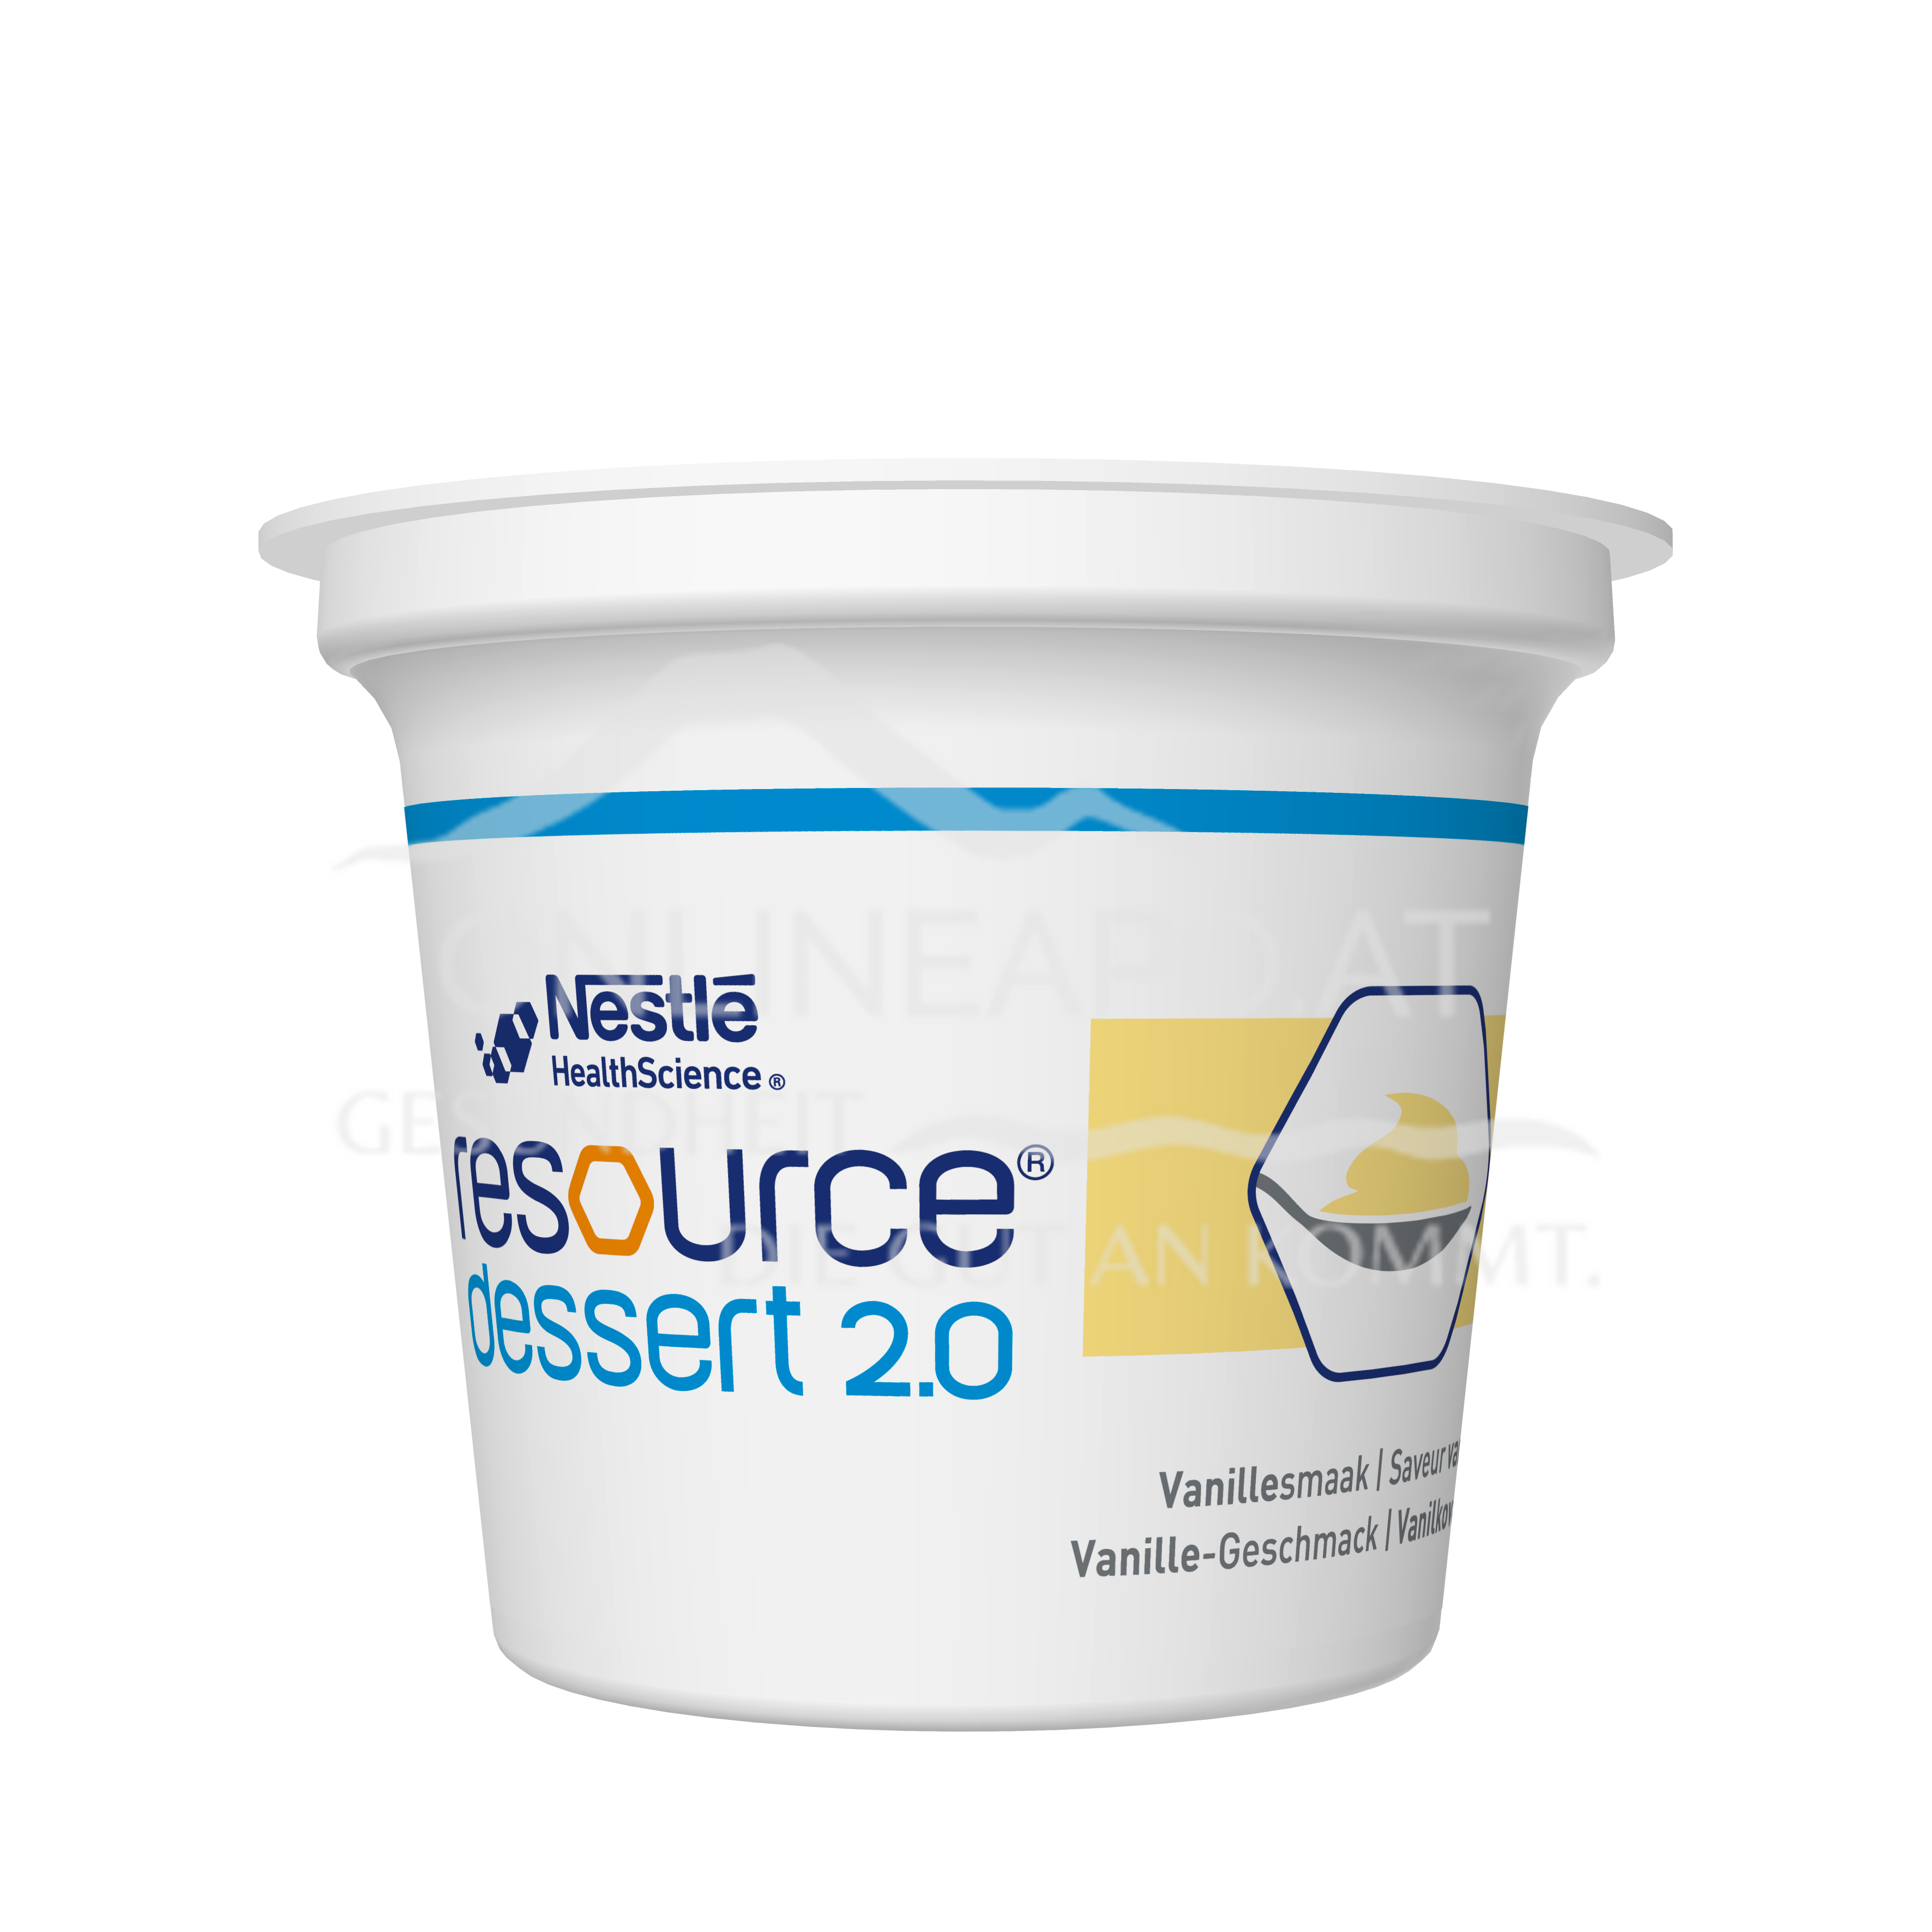 Resource® Dessert 2.0 Vanille 4x125g